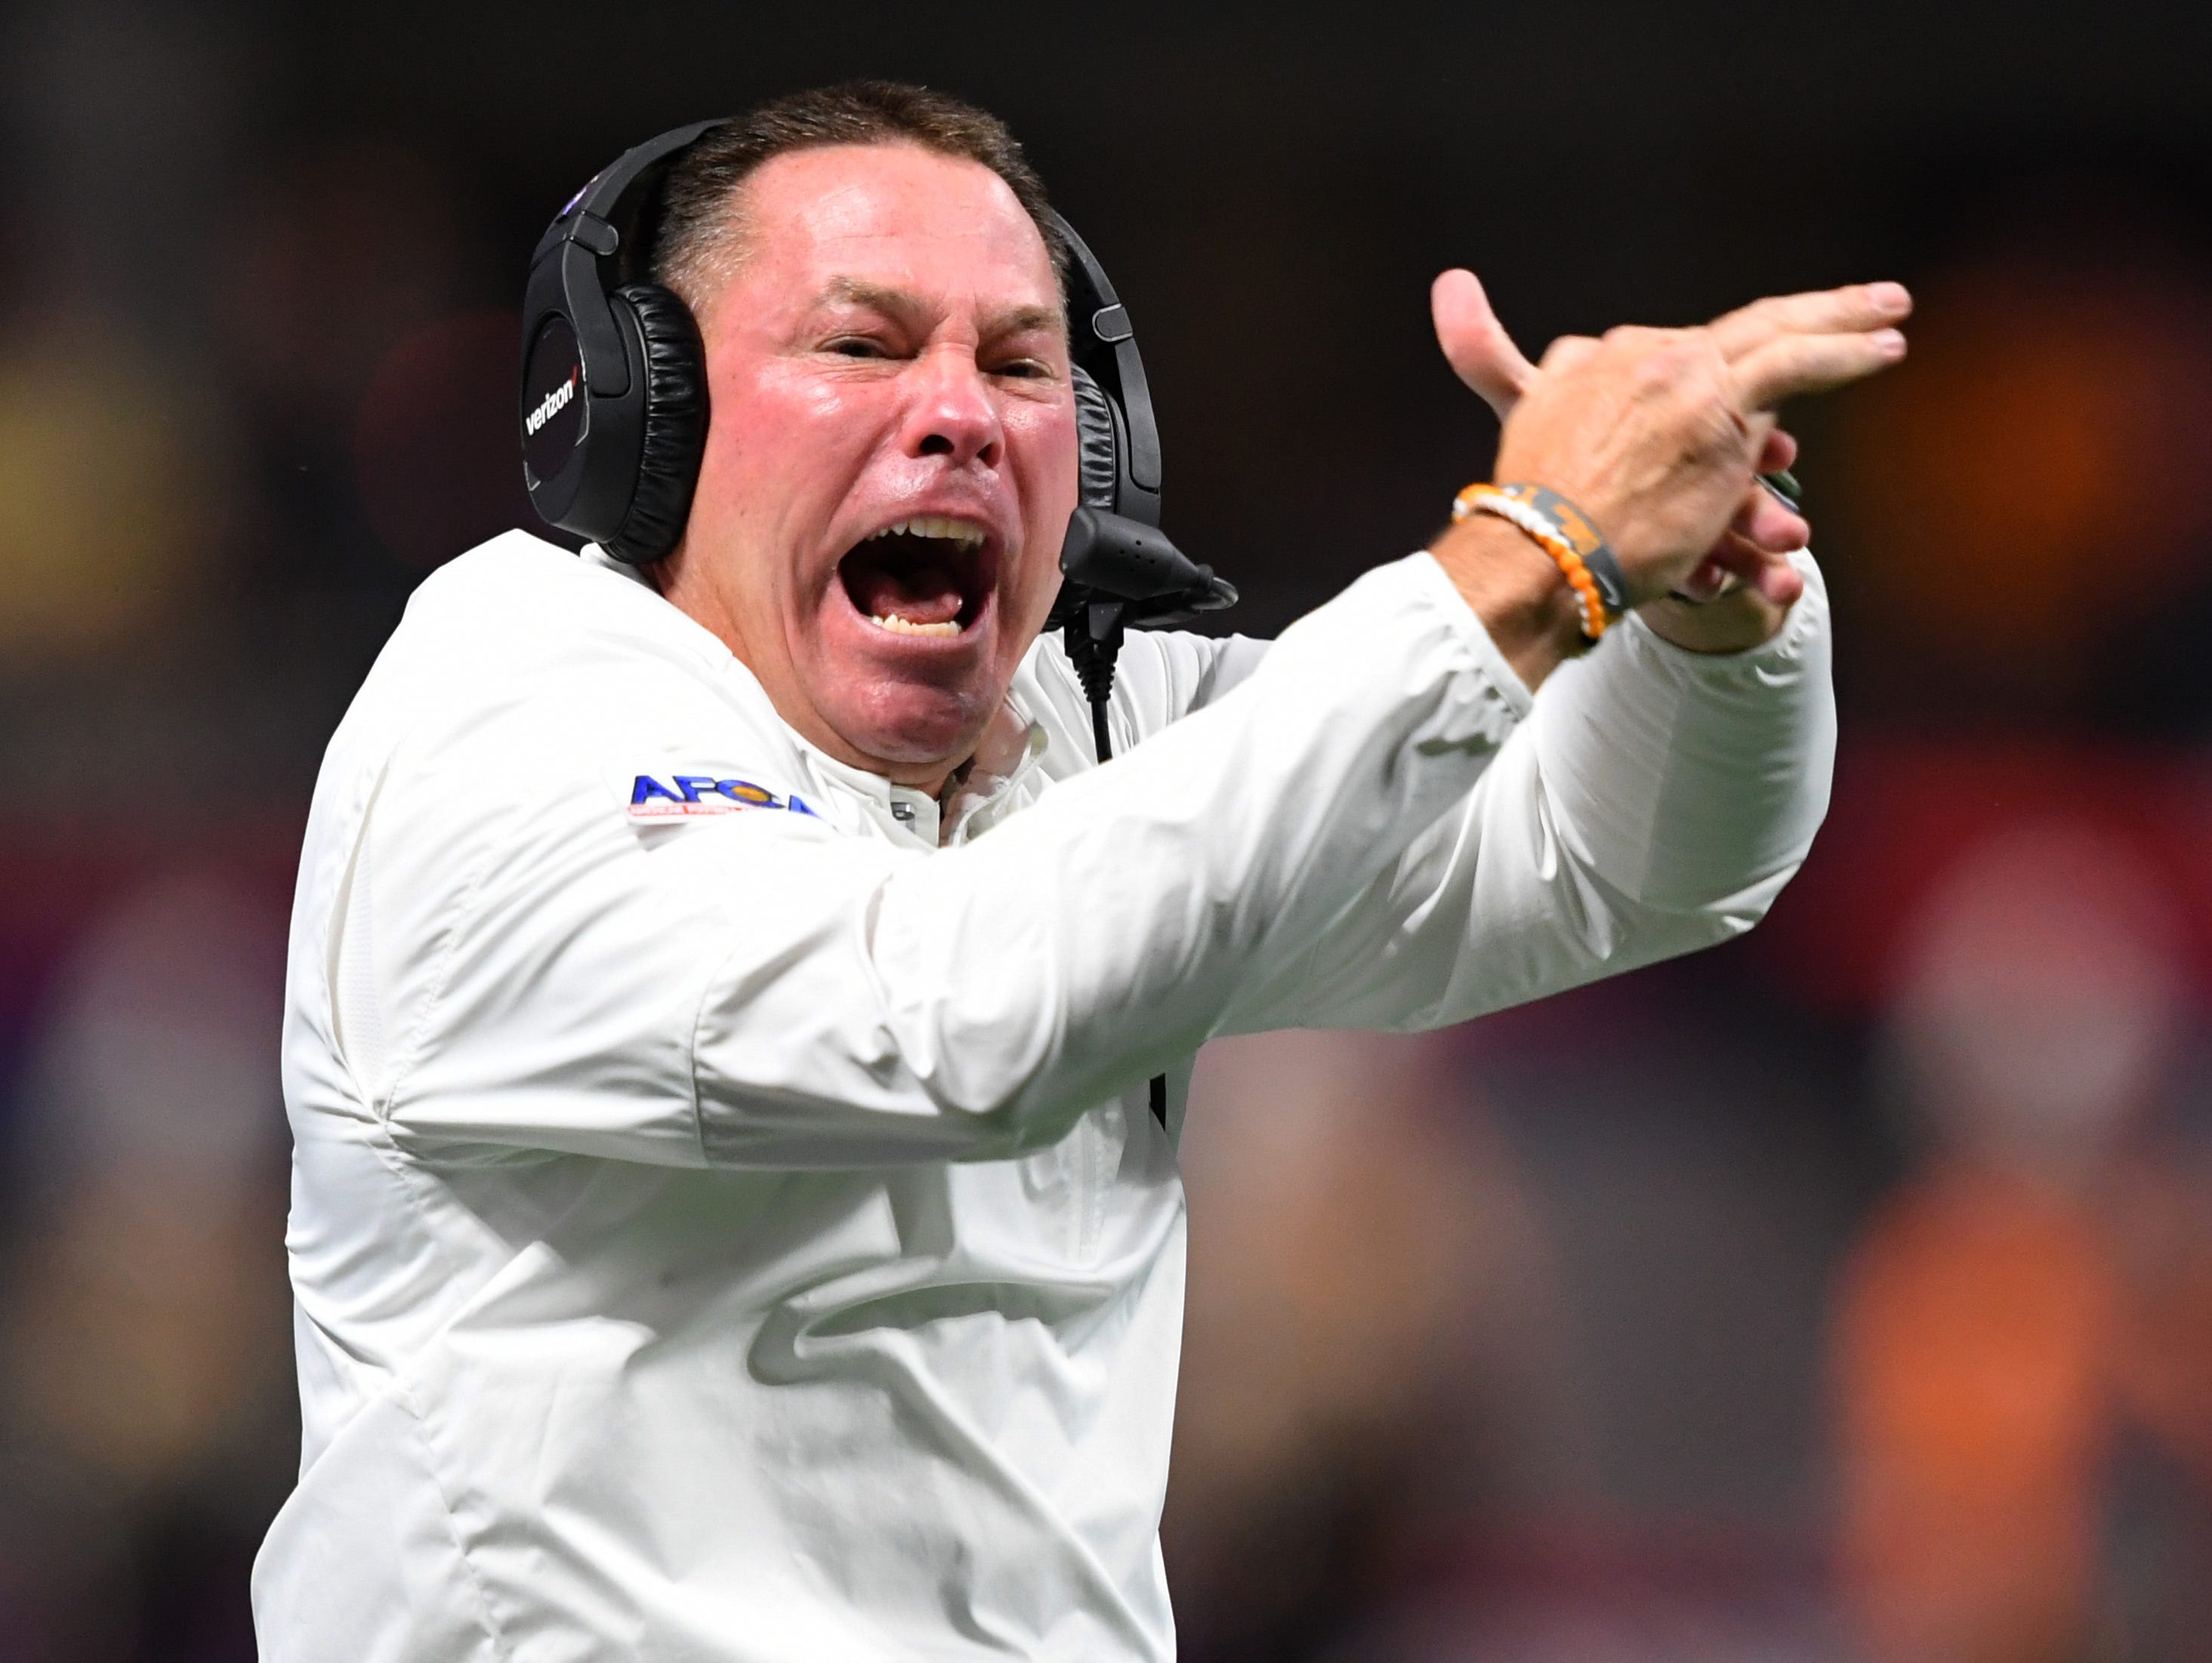 Tennessee Volunteers head coach Butch Jones tries to call a time out against the Georgia Tech Yellow Jackets during the second quarter at Mercedes-Benz Stadium in Atlanta.